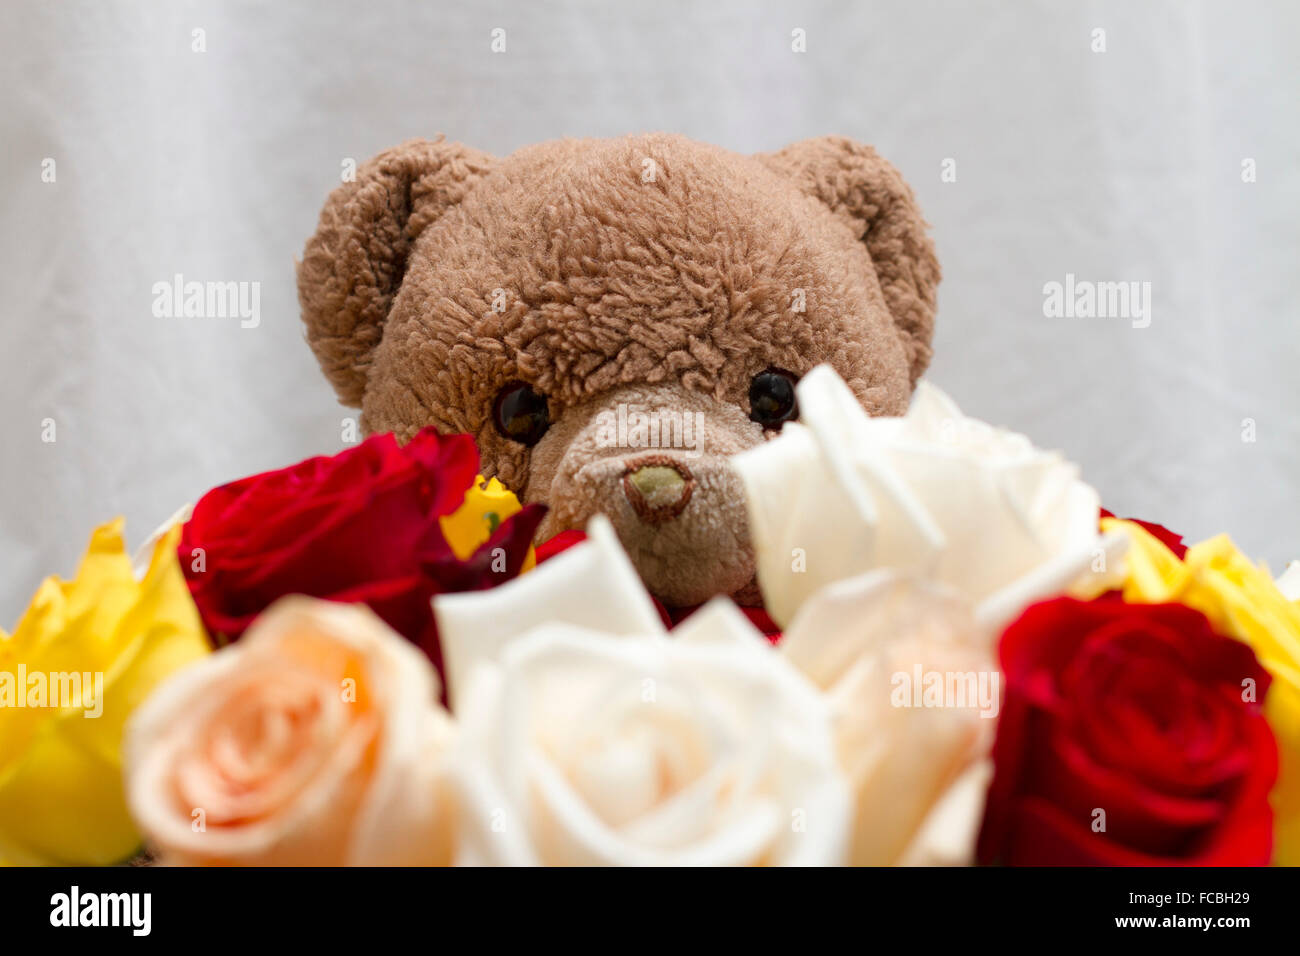 Teddy bear red rose stock photos teddy bear red rose stock images cute brown teddy bear giving a bouquets of white yellow red orange roses izmirmasajfo